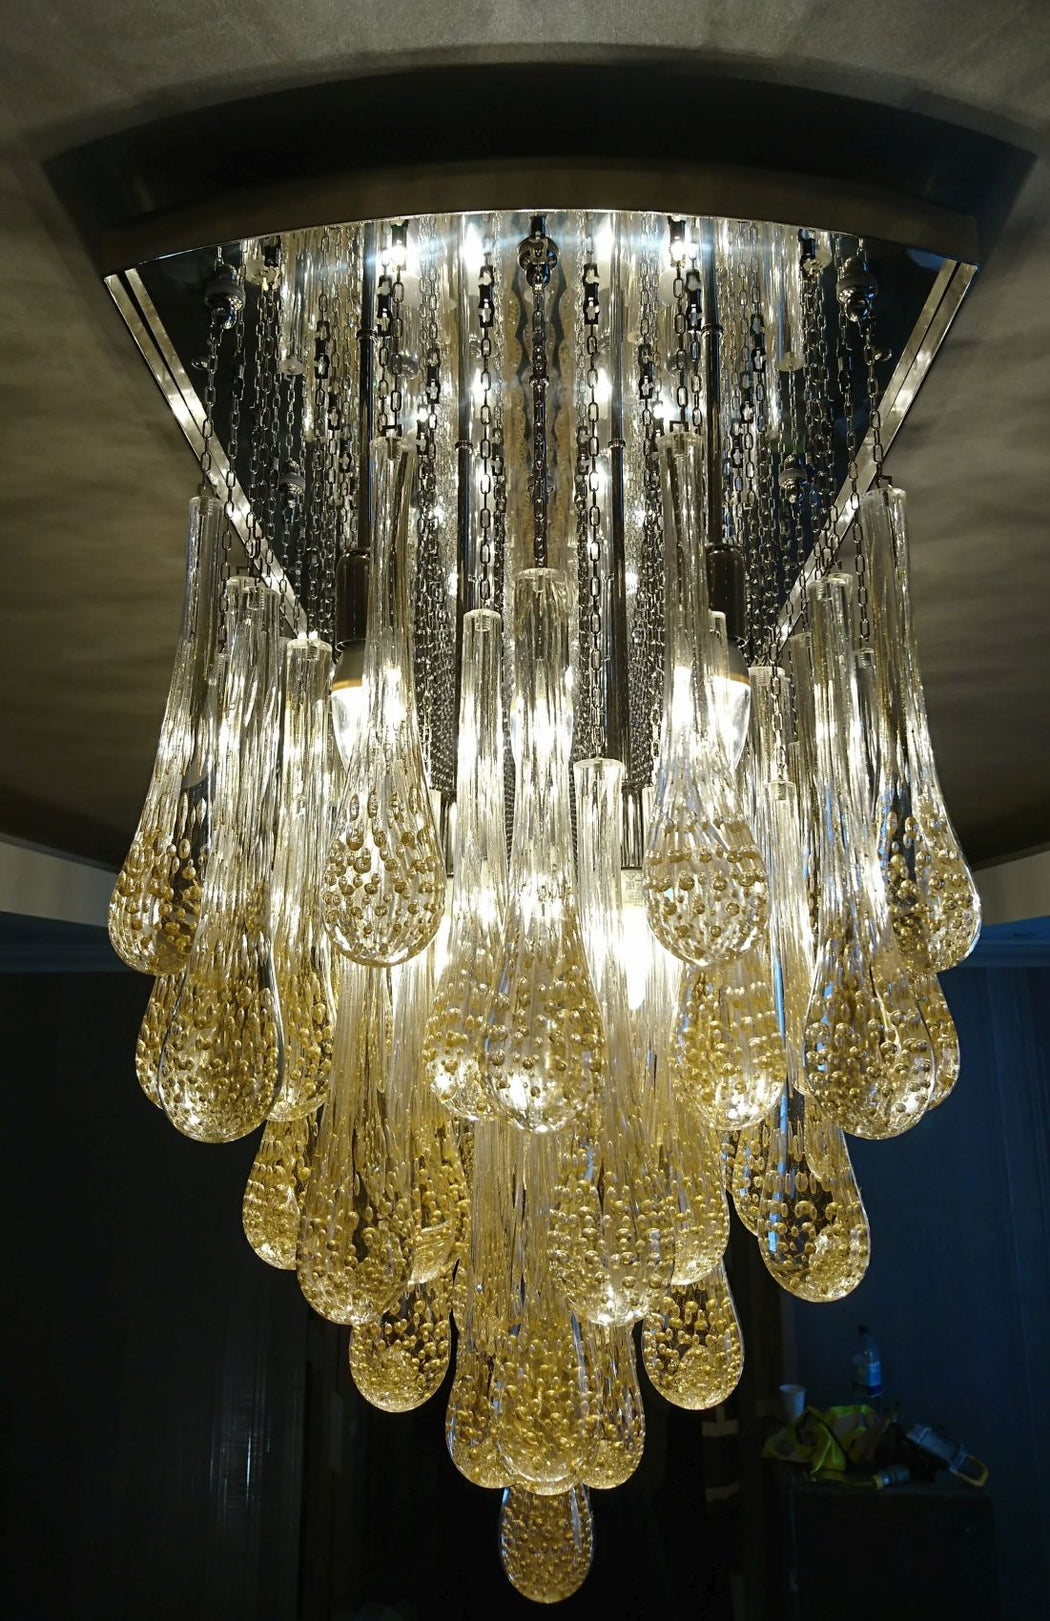 Bespoke 3.2 metre dining room chandelier with Murano glass prisms